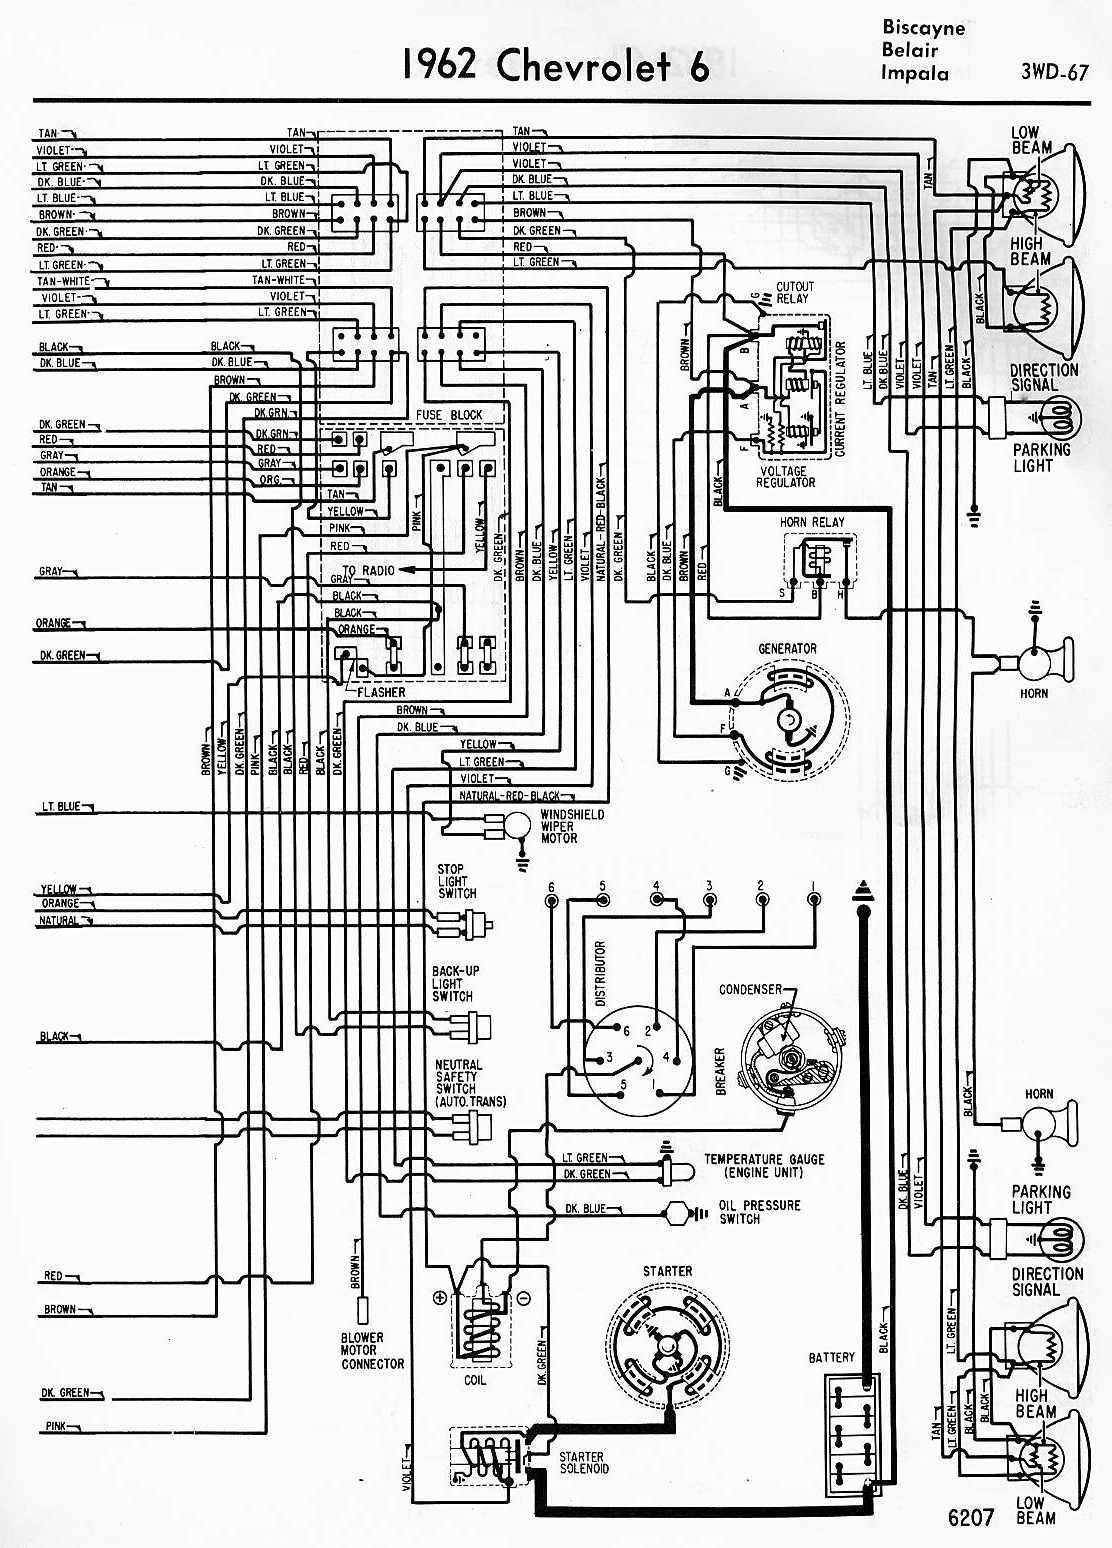 hight resolution of under dash wiring harness 1970 impala wiring diagram mega1970 impala wiring harness wiring diagram week 1970